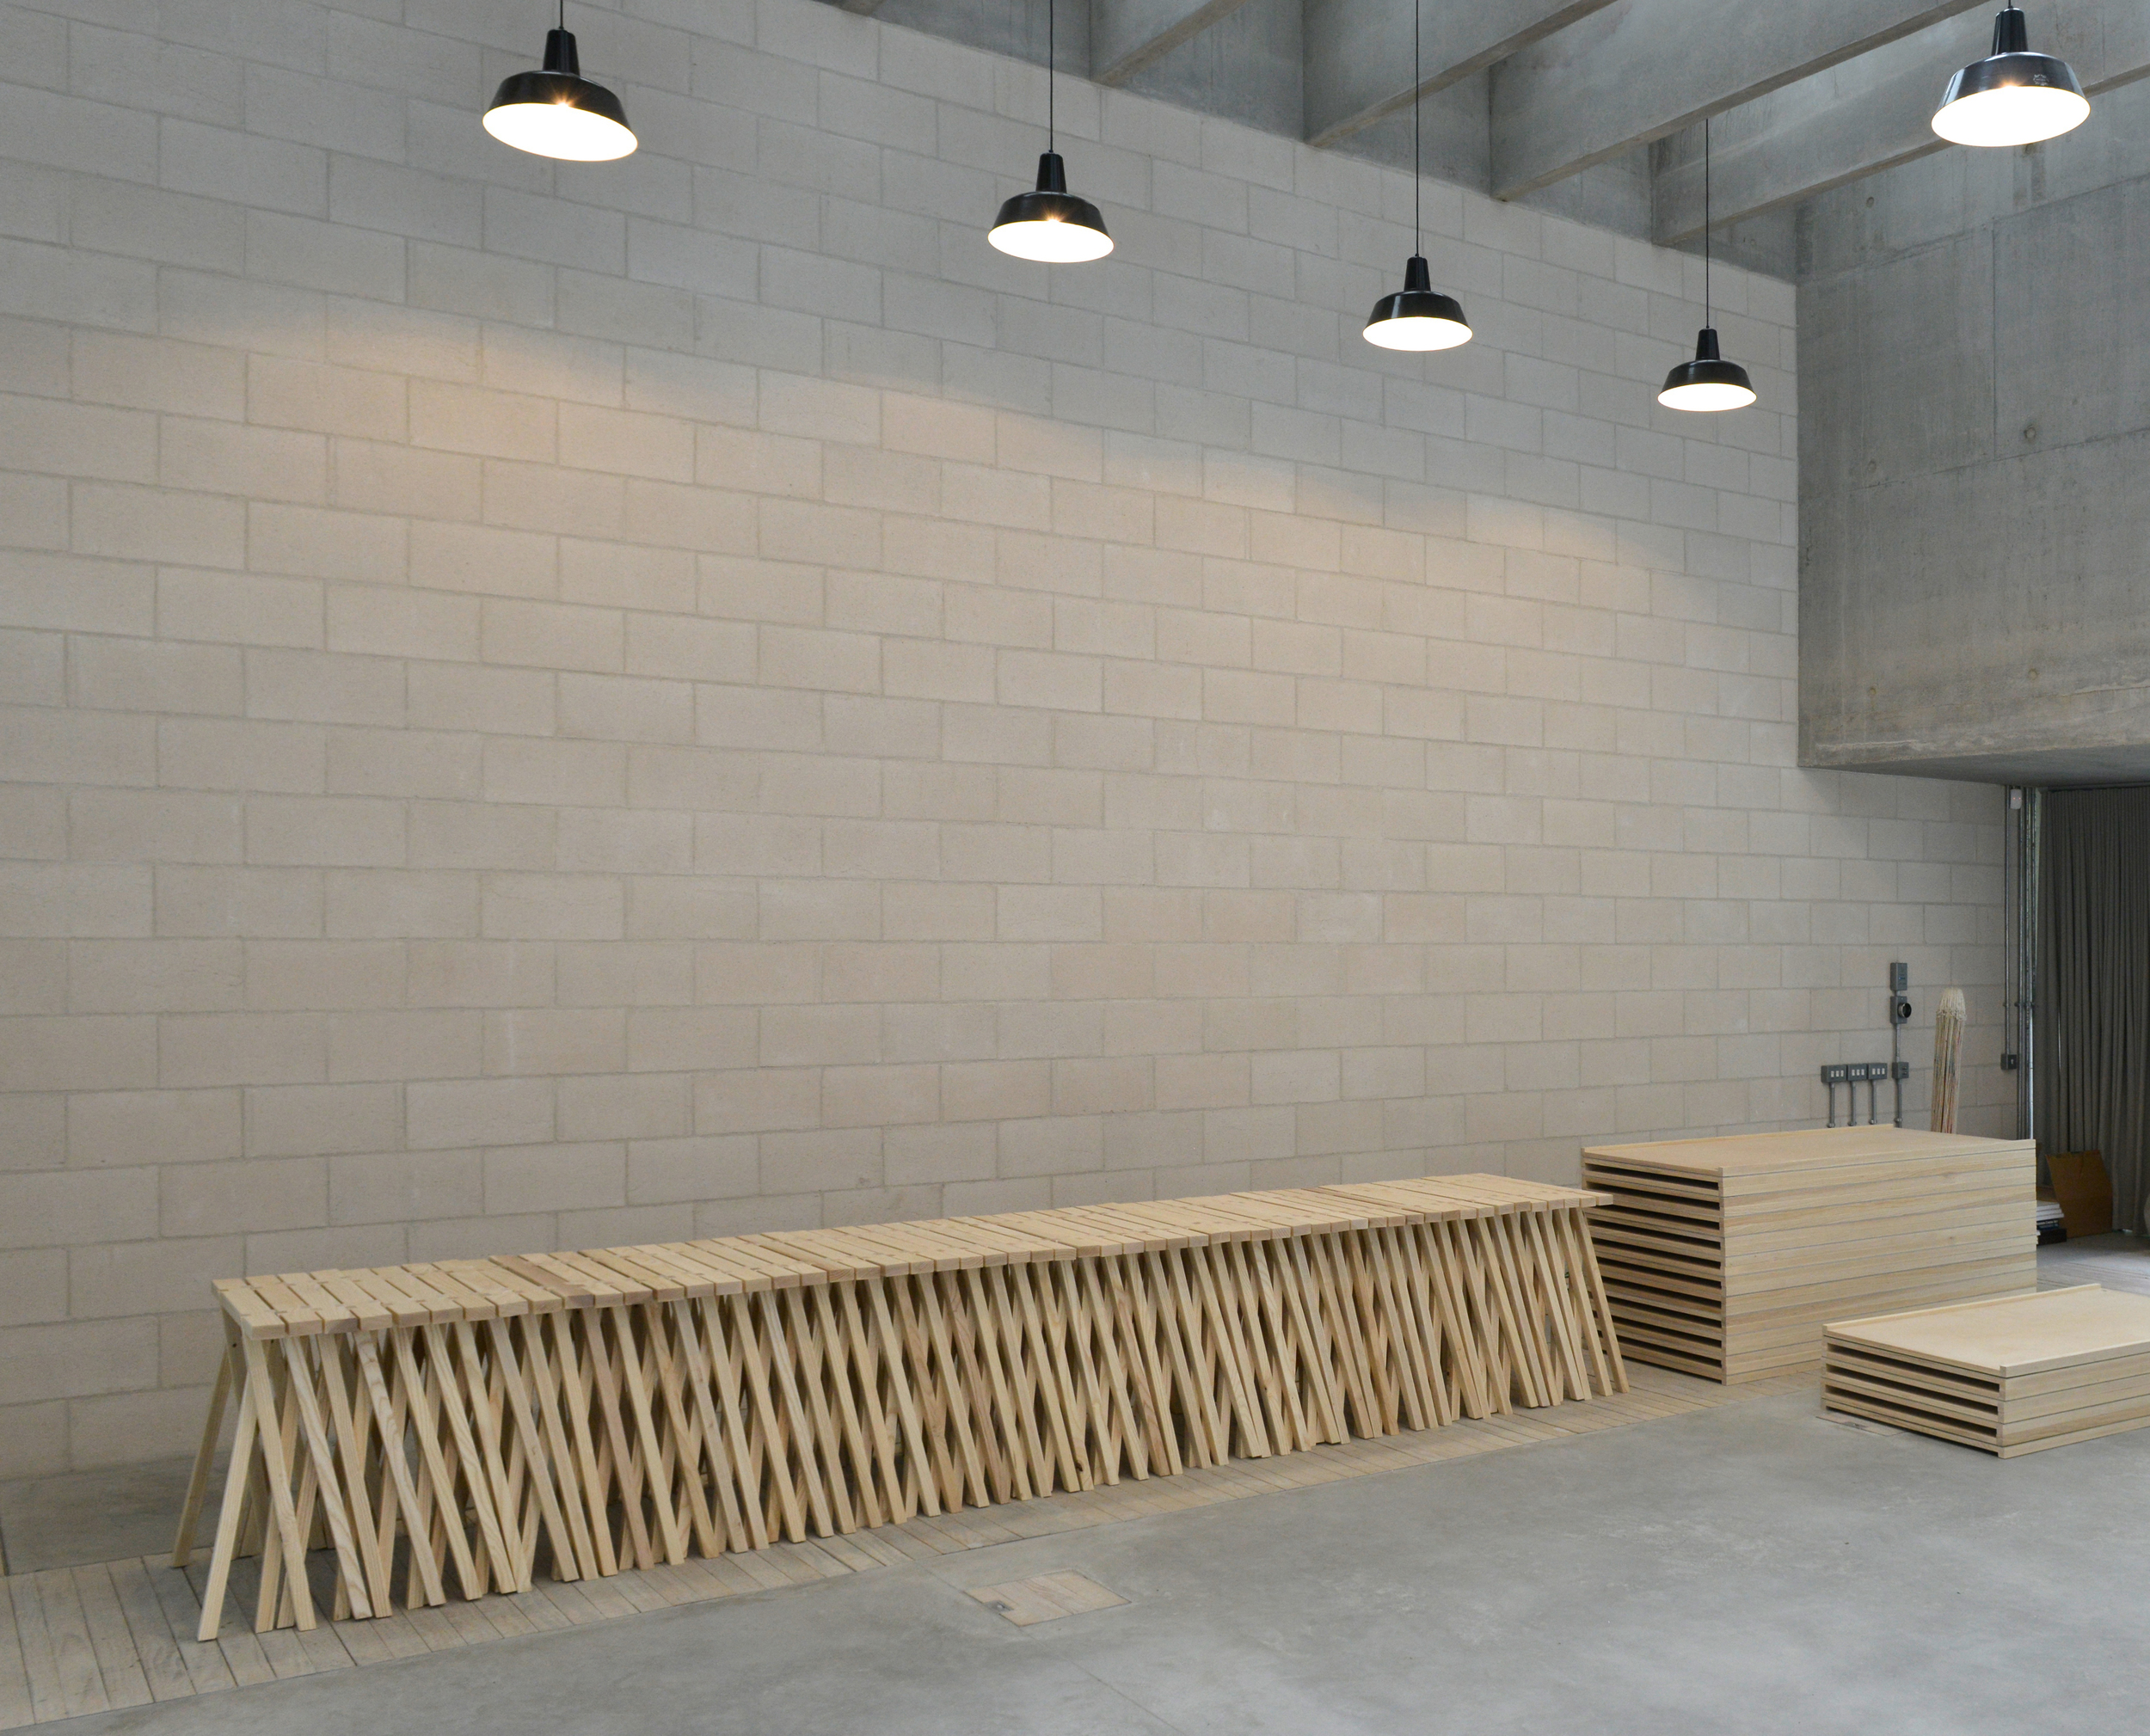 Trestles - Juergen Teller Studio  May 2016  Ash trestles and tabletops for Juergen Teller's beautiful new studio by 6a Architects